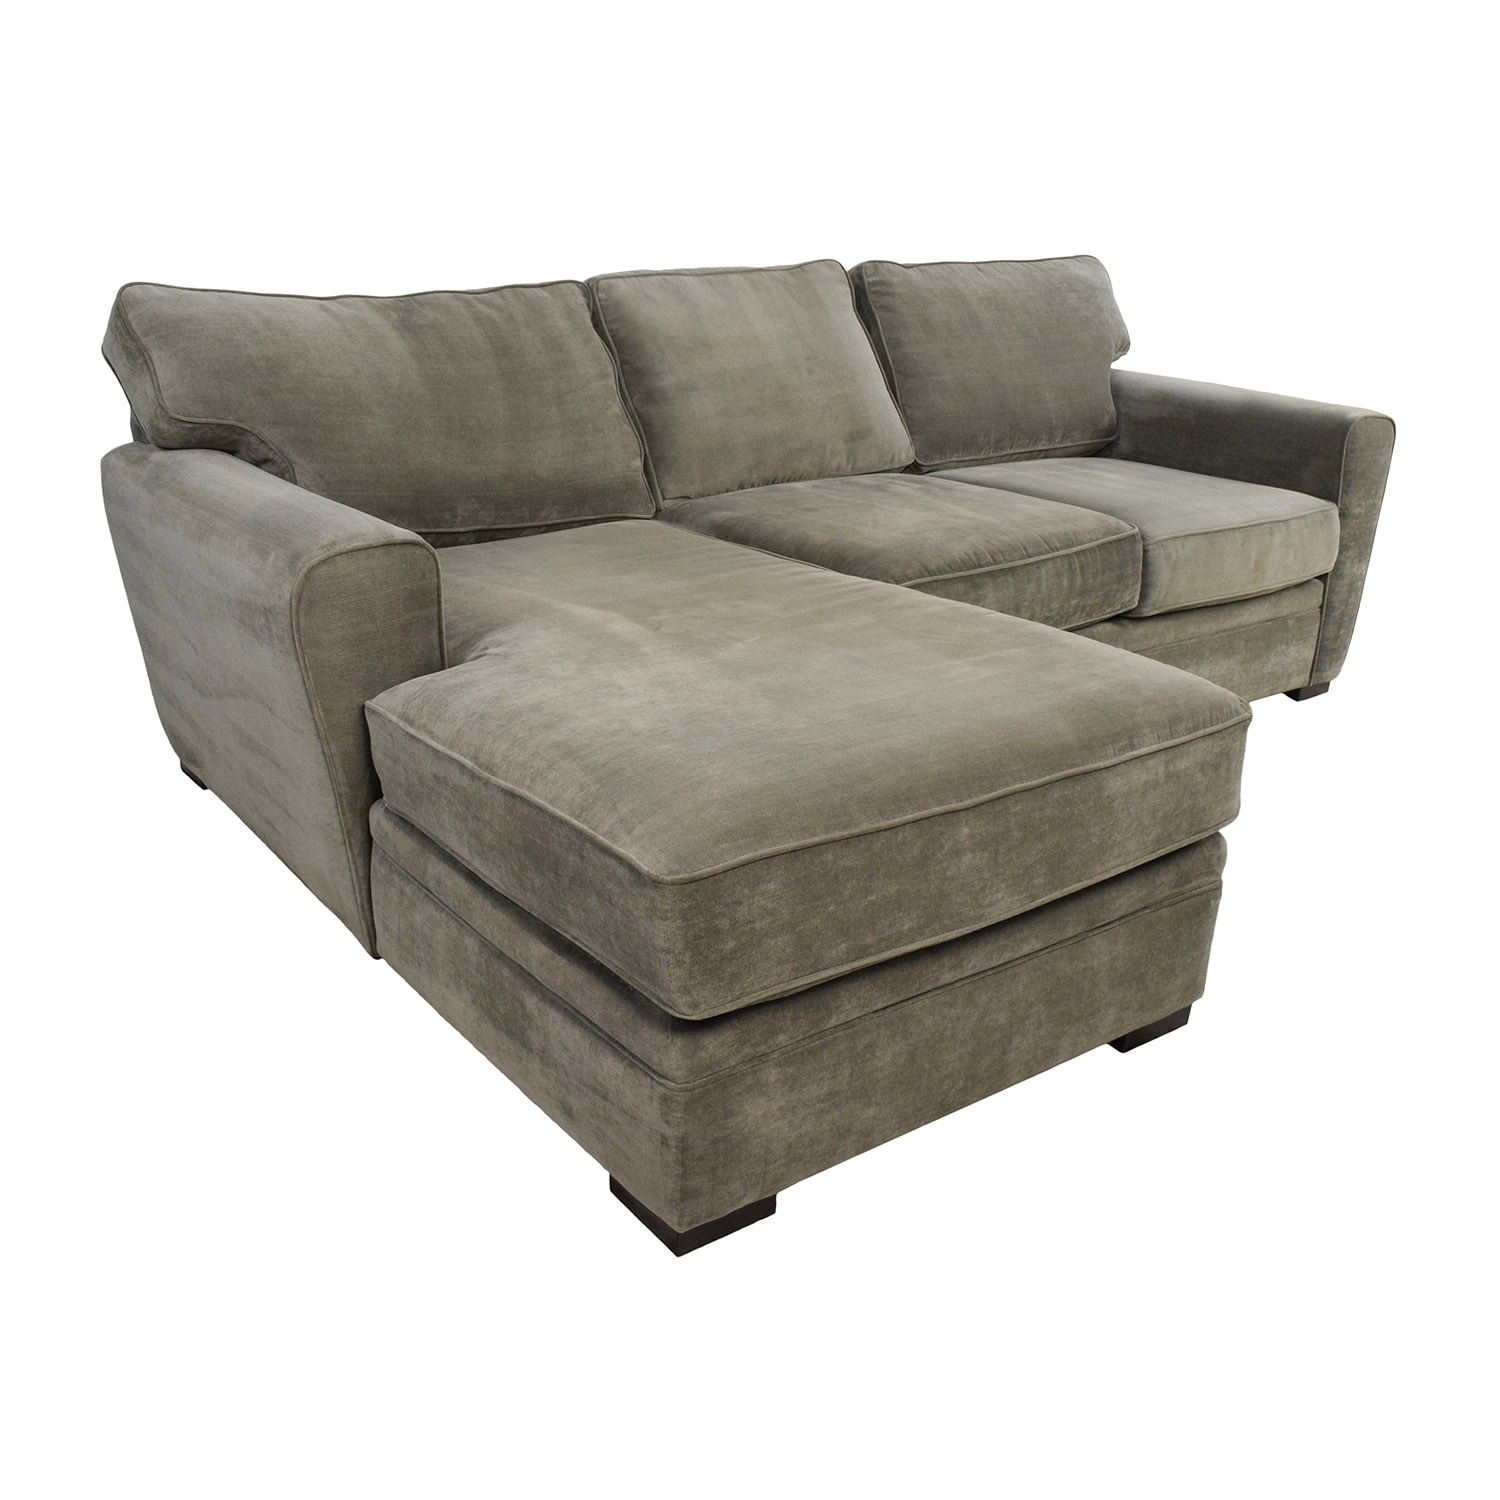 58 Off Raymour And Flanigan Raymour Flanigan Grey Sectional Sofas